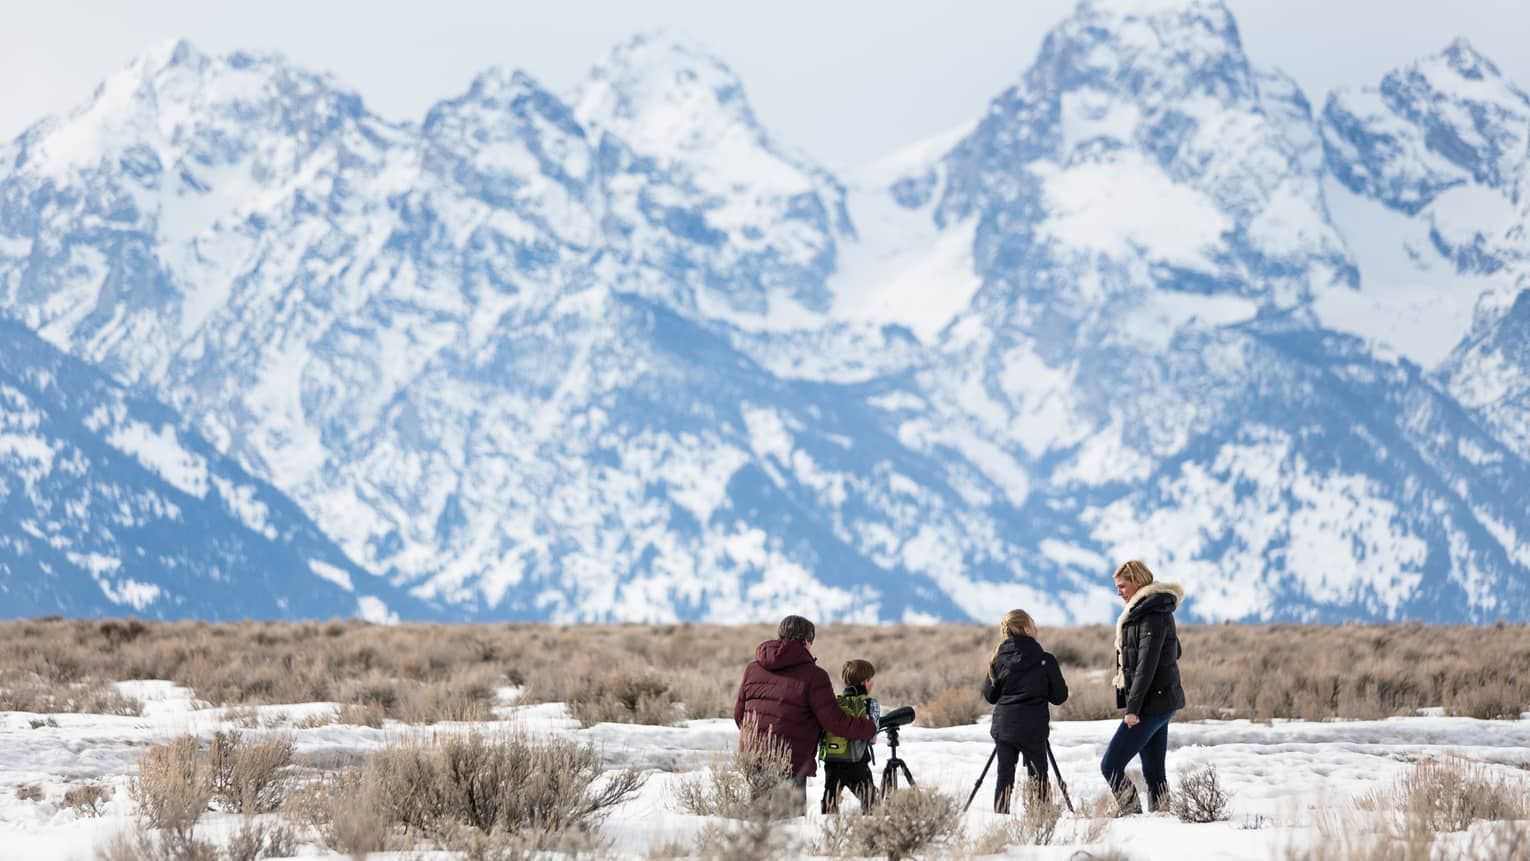 A family in winter apparel uses two telescopes to view a snowy mountain peaks